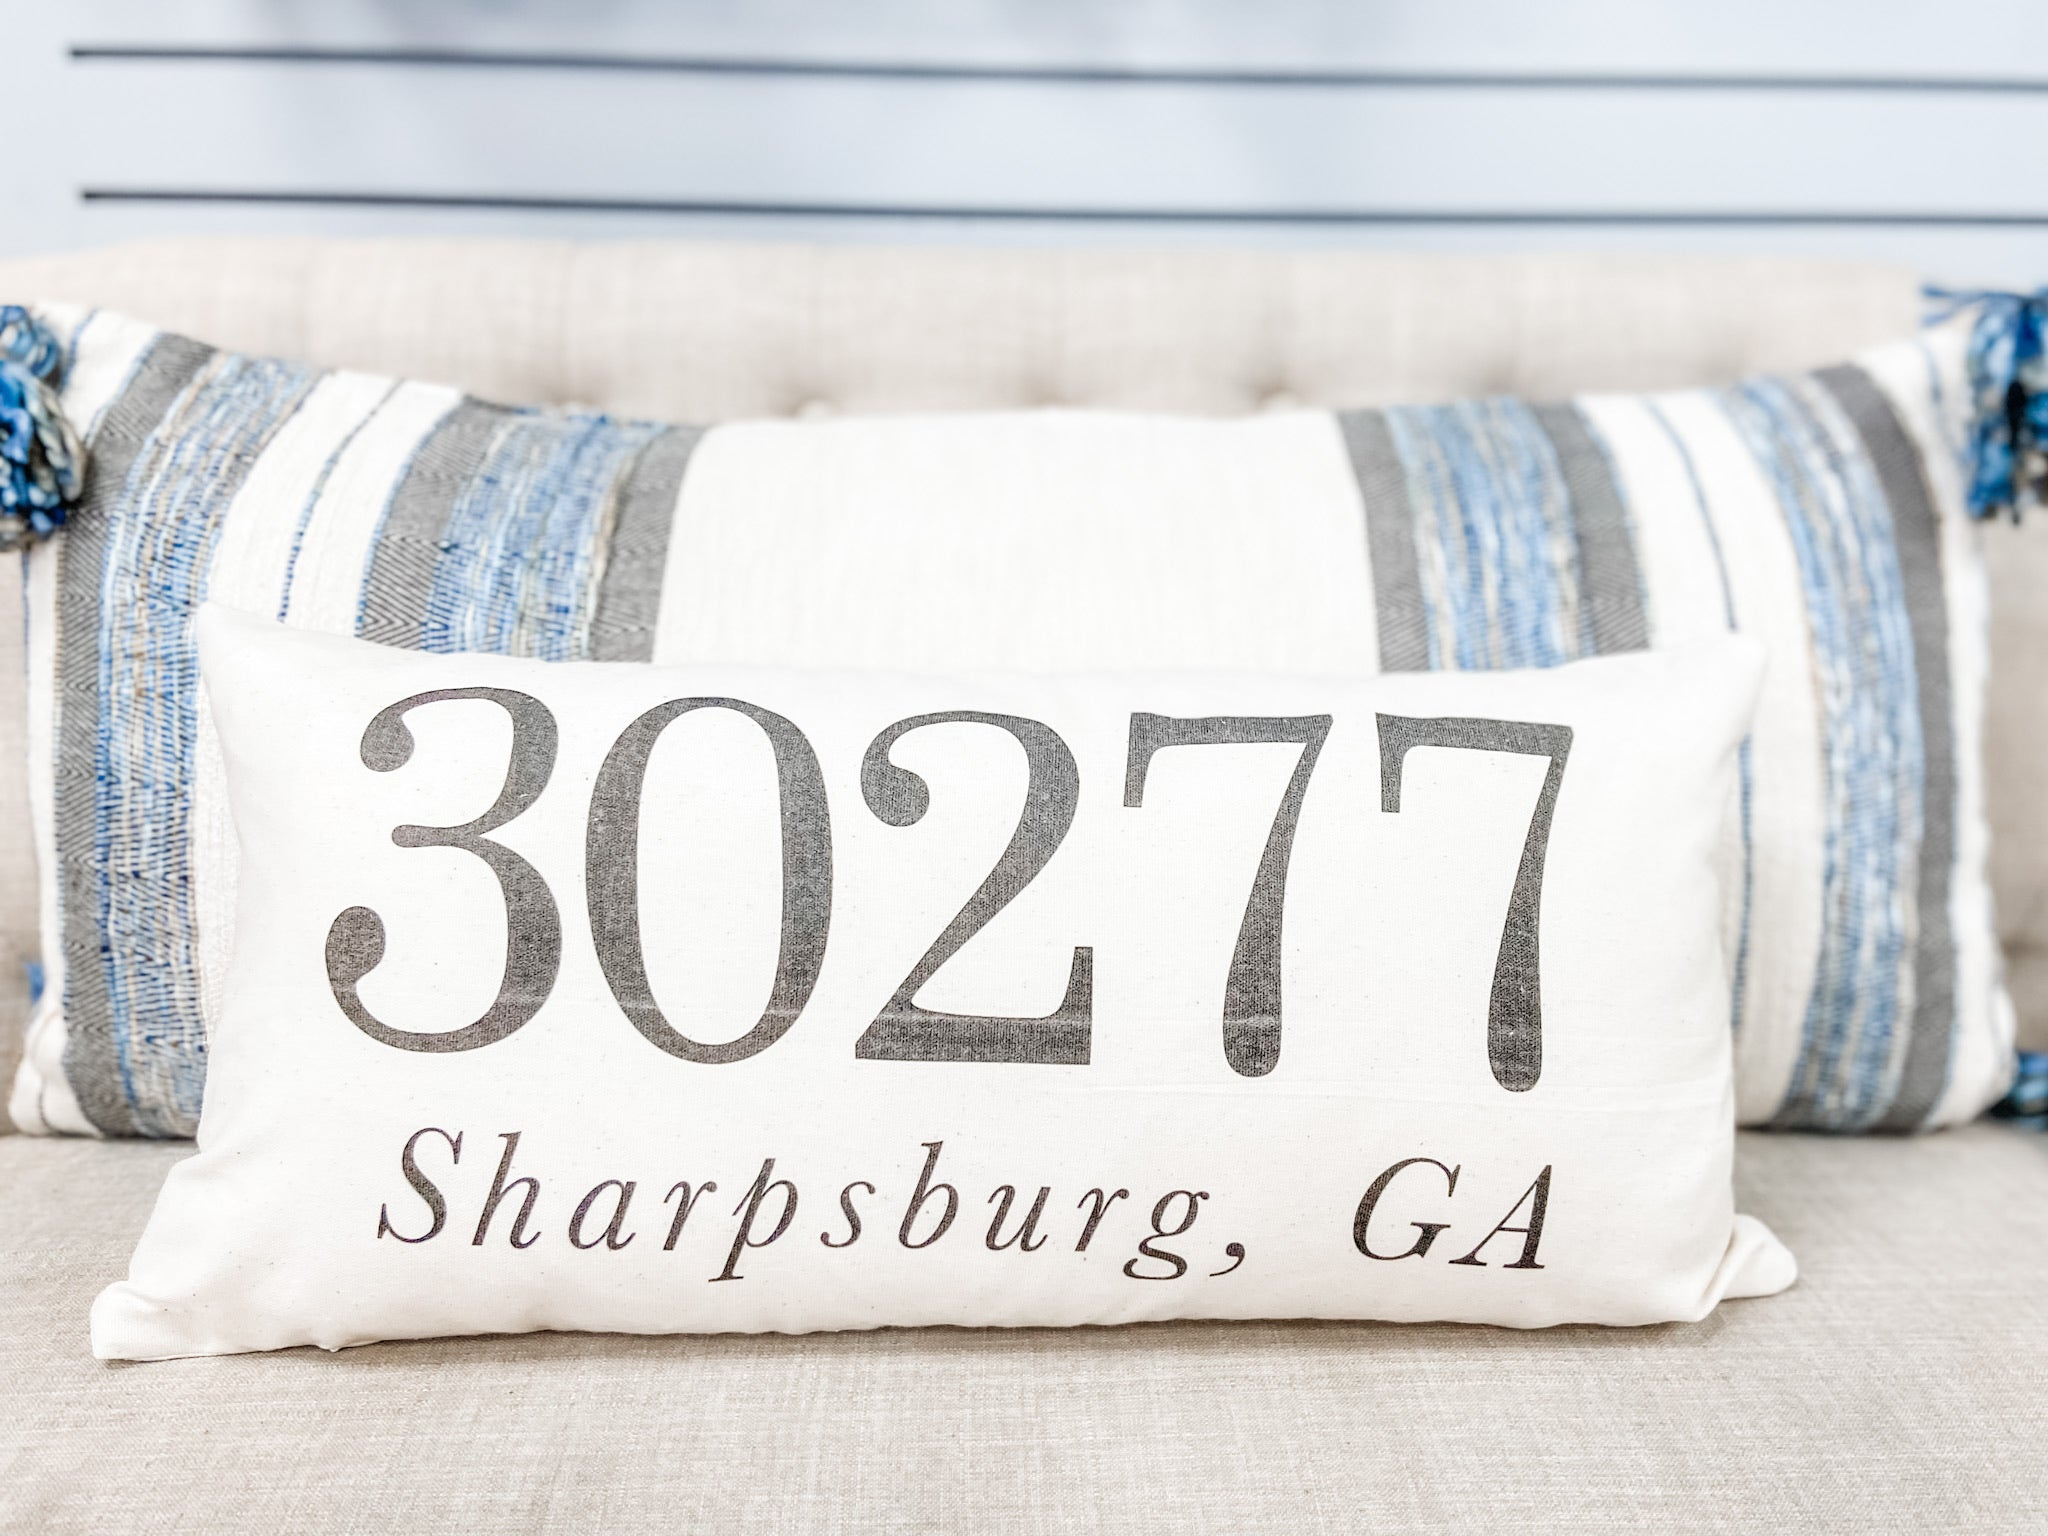 30277 Sharpsburg, GA Zip Code Lumbar Pillow